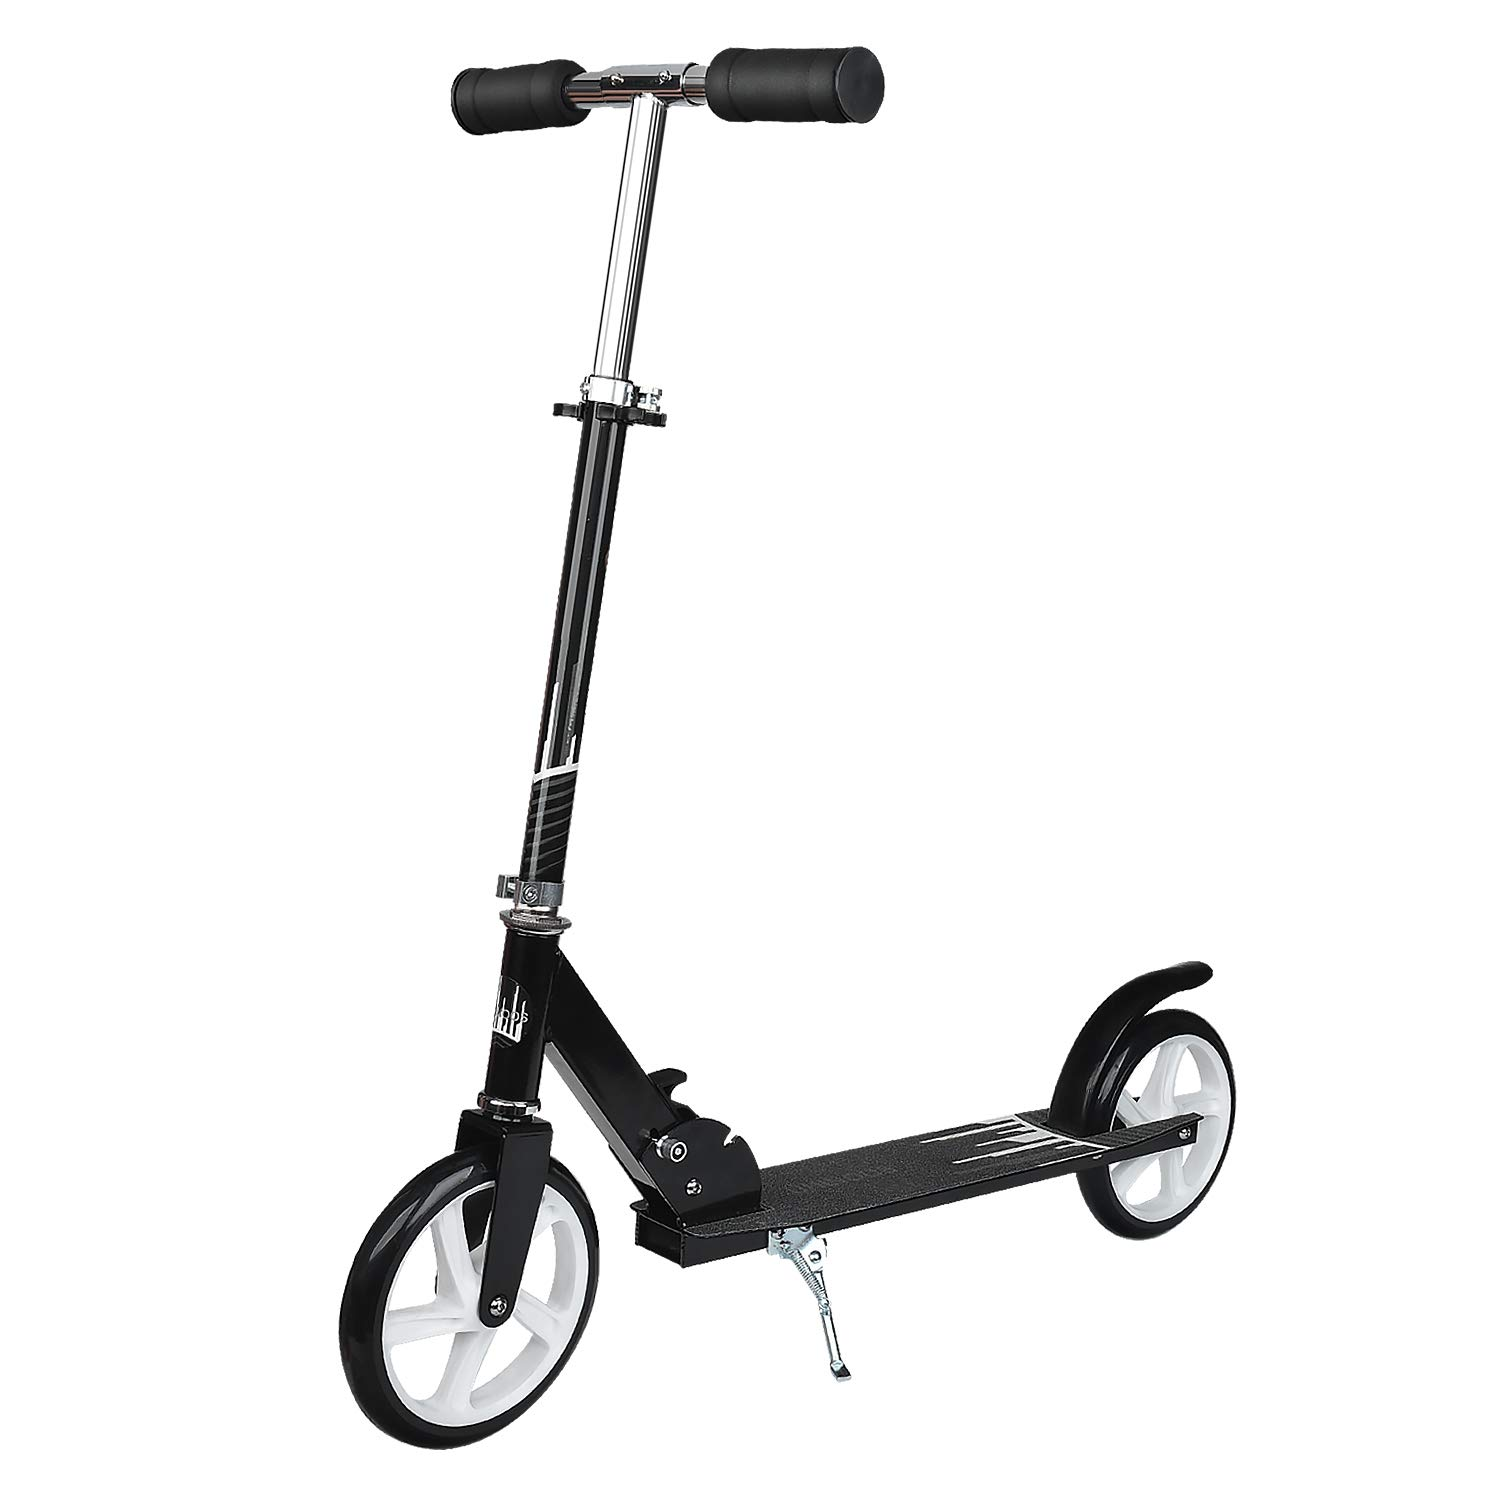 UHINOOS Adults Kick Scooter 200MM with Kickstand-Big Wheels Kids Scooter with Easy Folding System for Teenager (Black) by UHINOOS